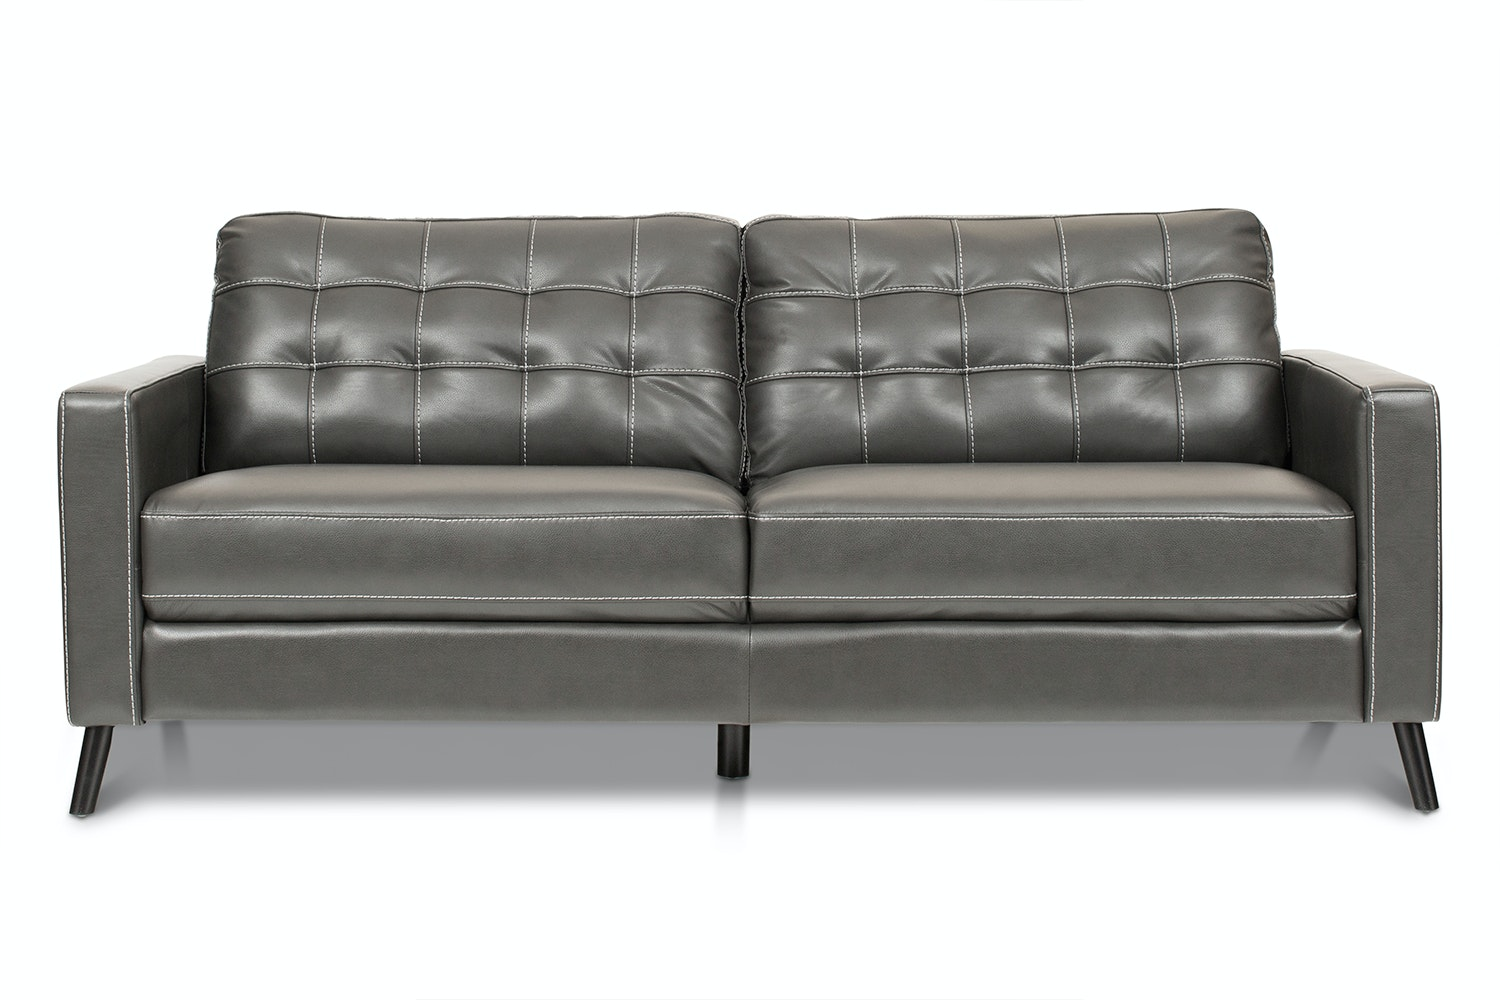 Danny 3 Seater Sofa